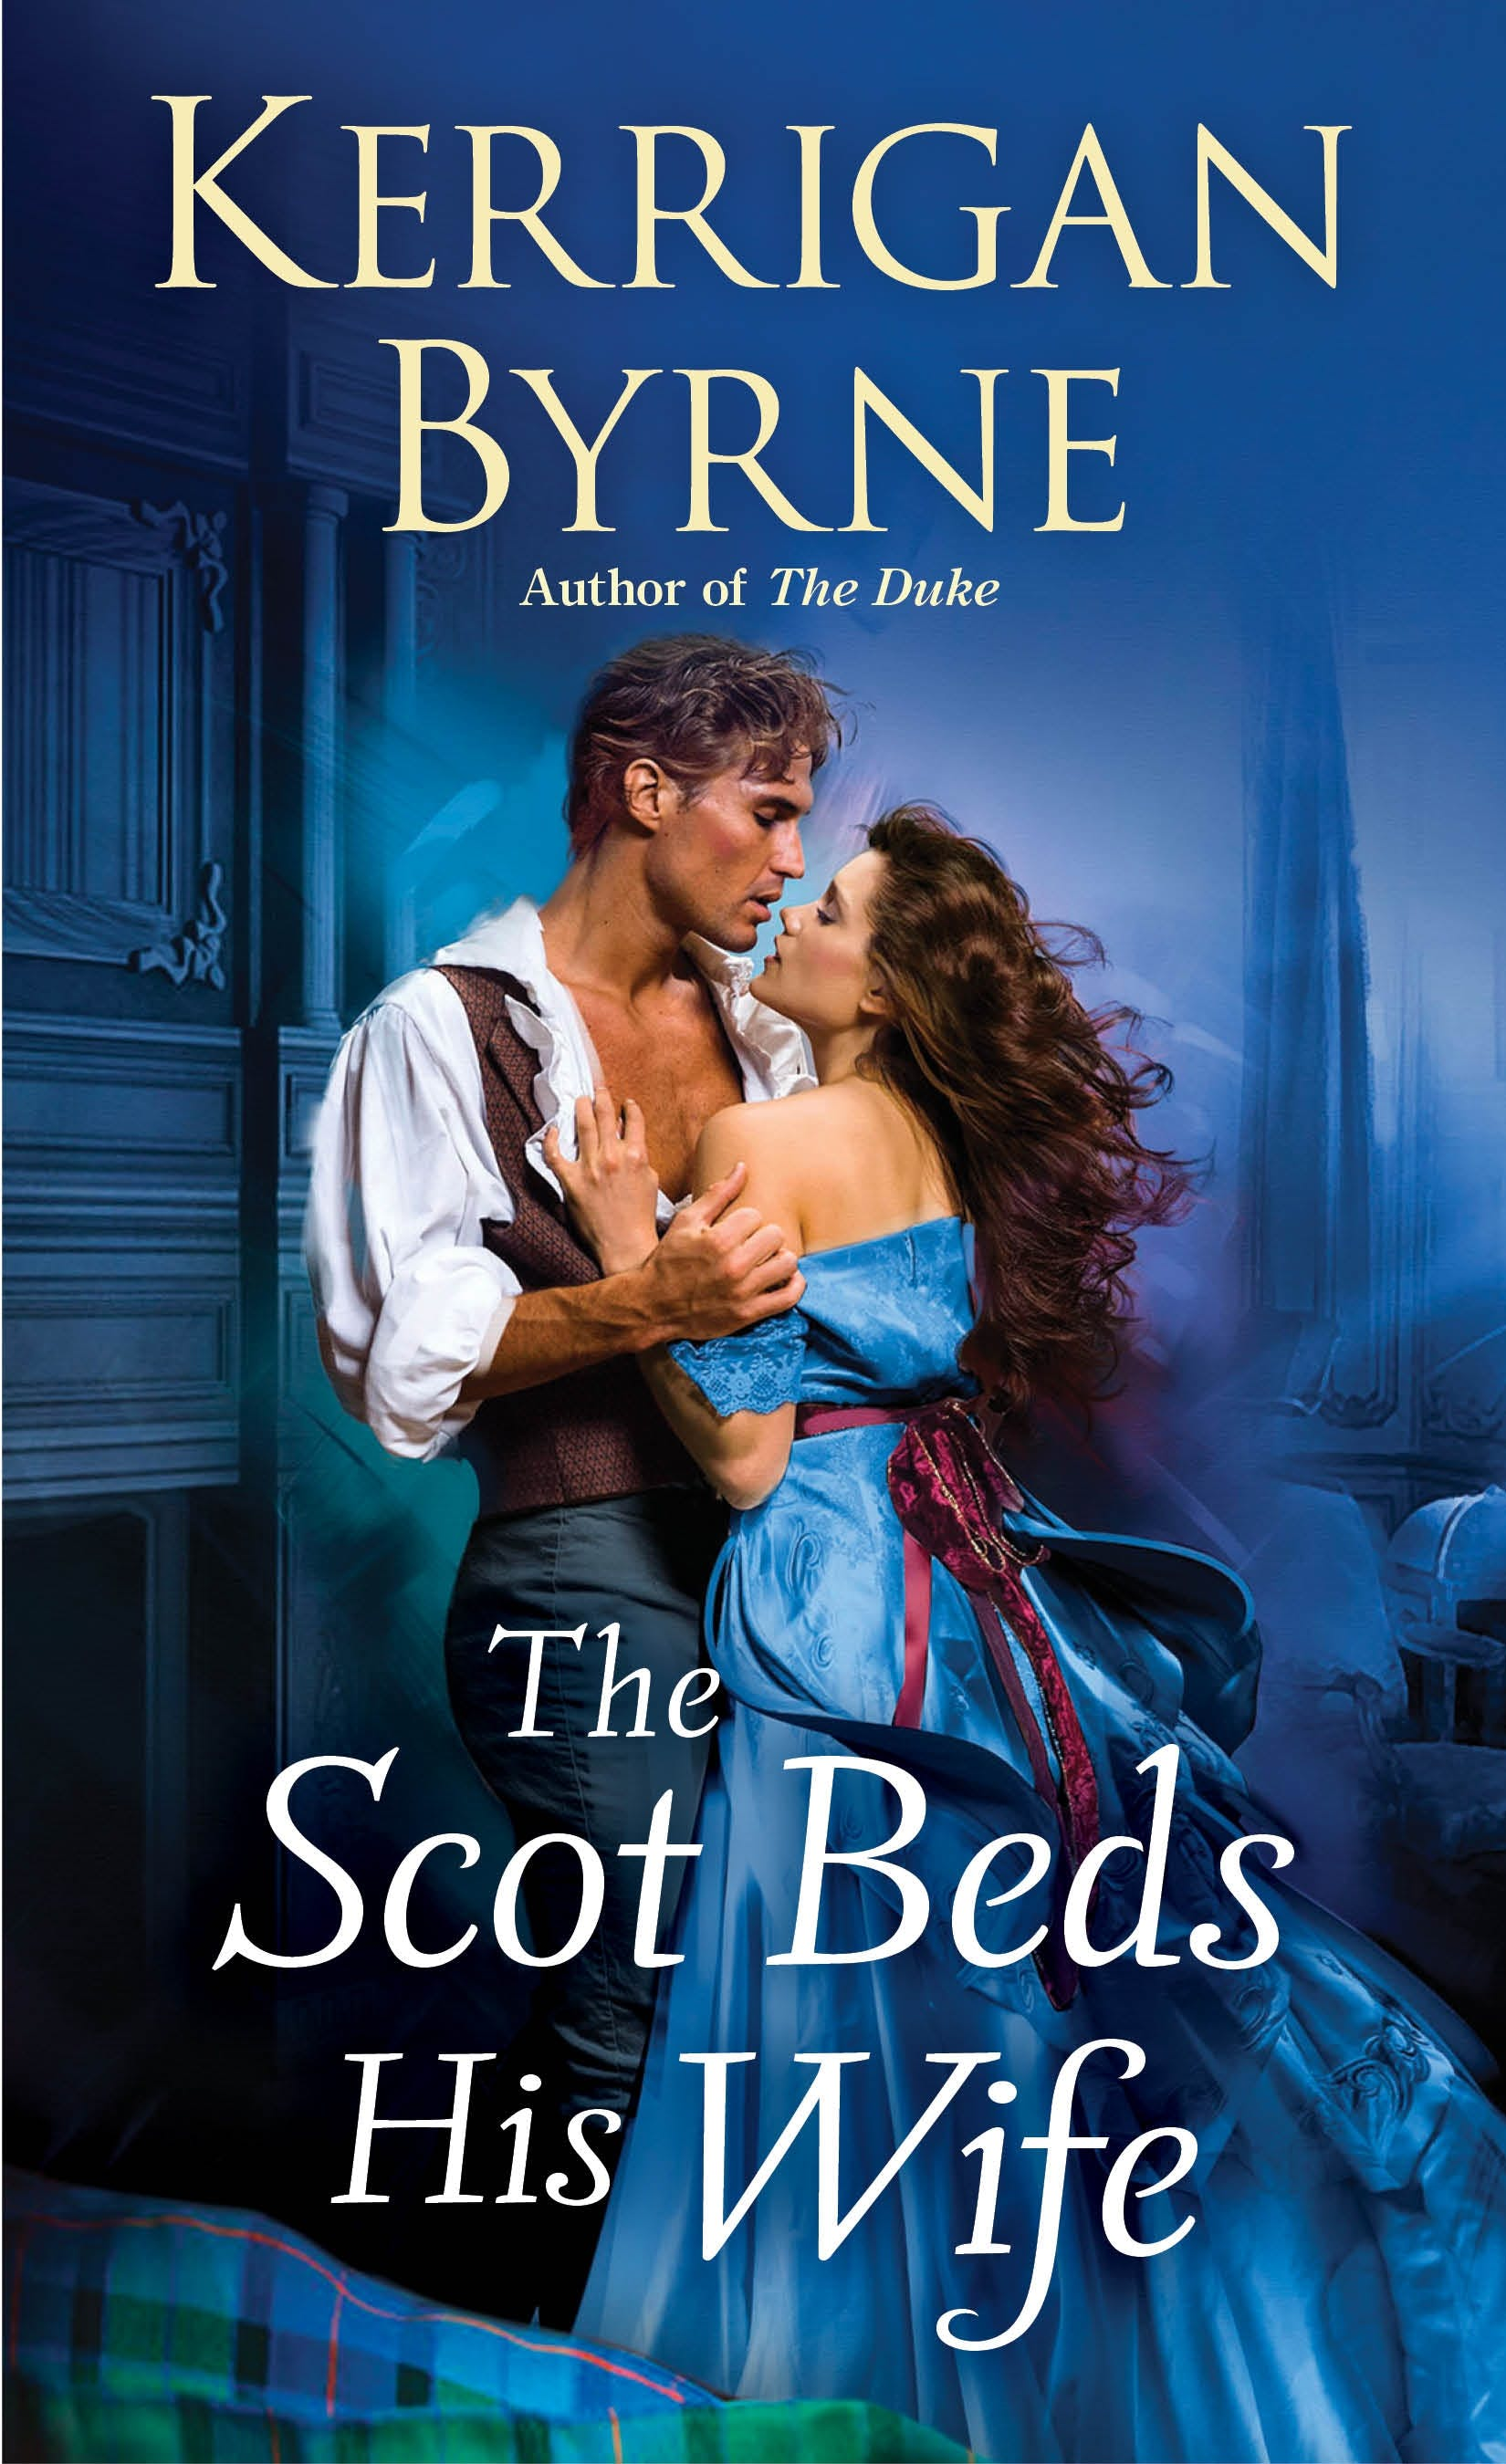 Image of The Scot Beds His Wife